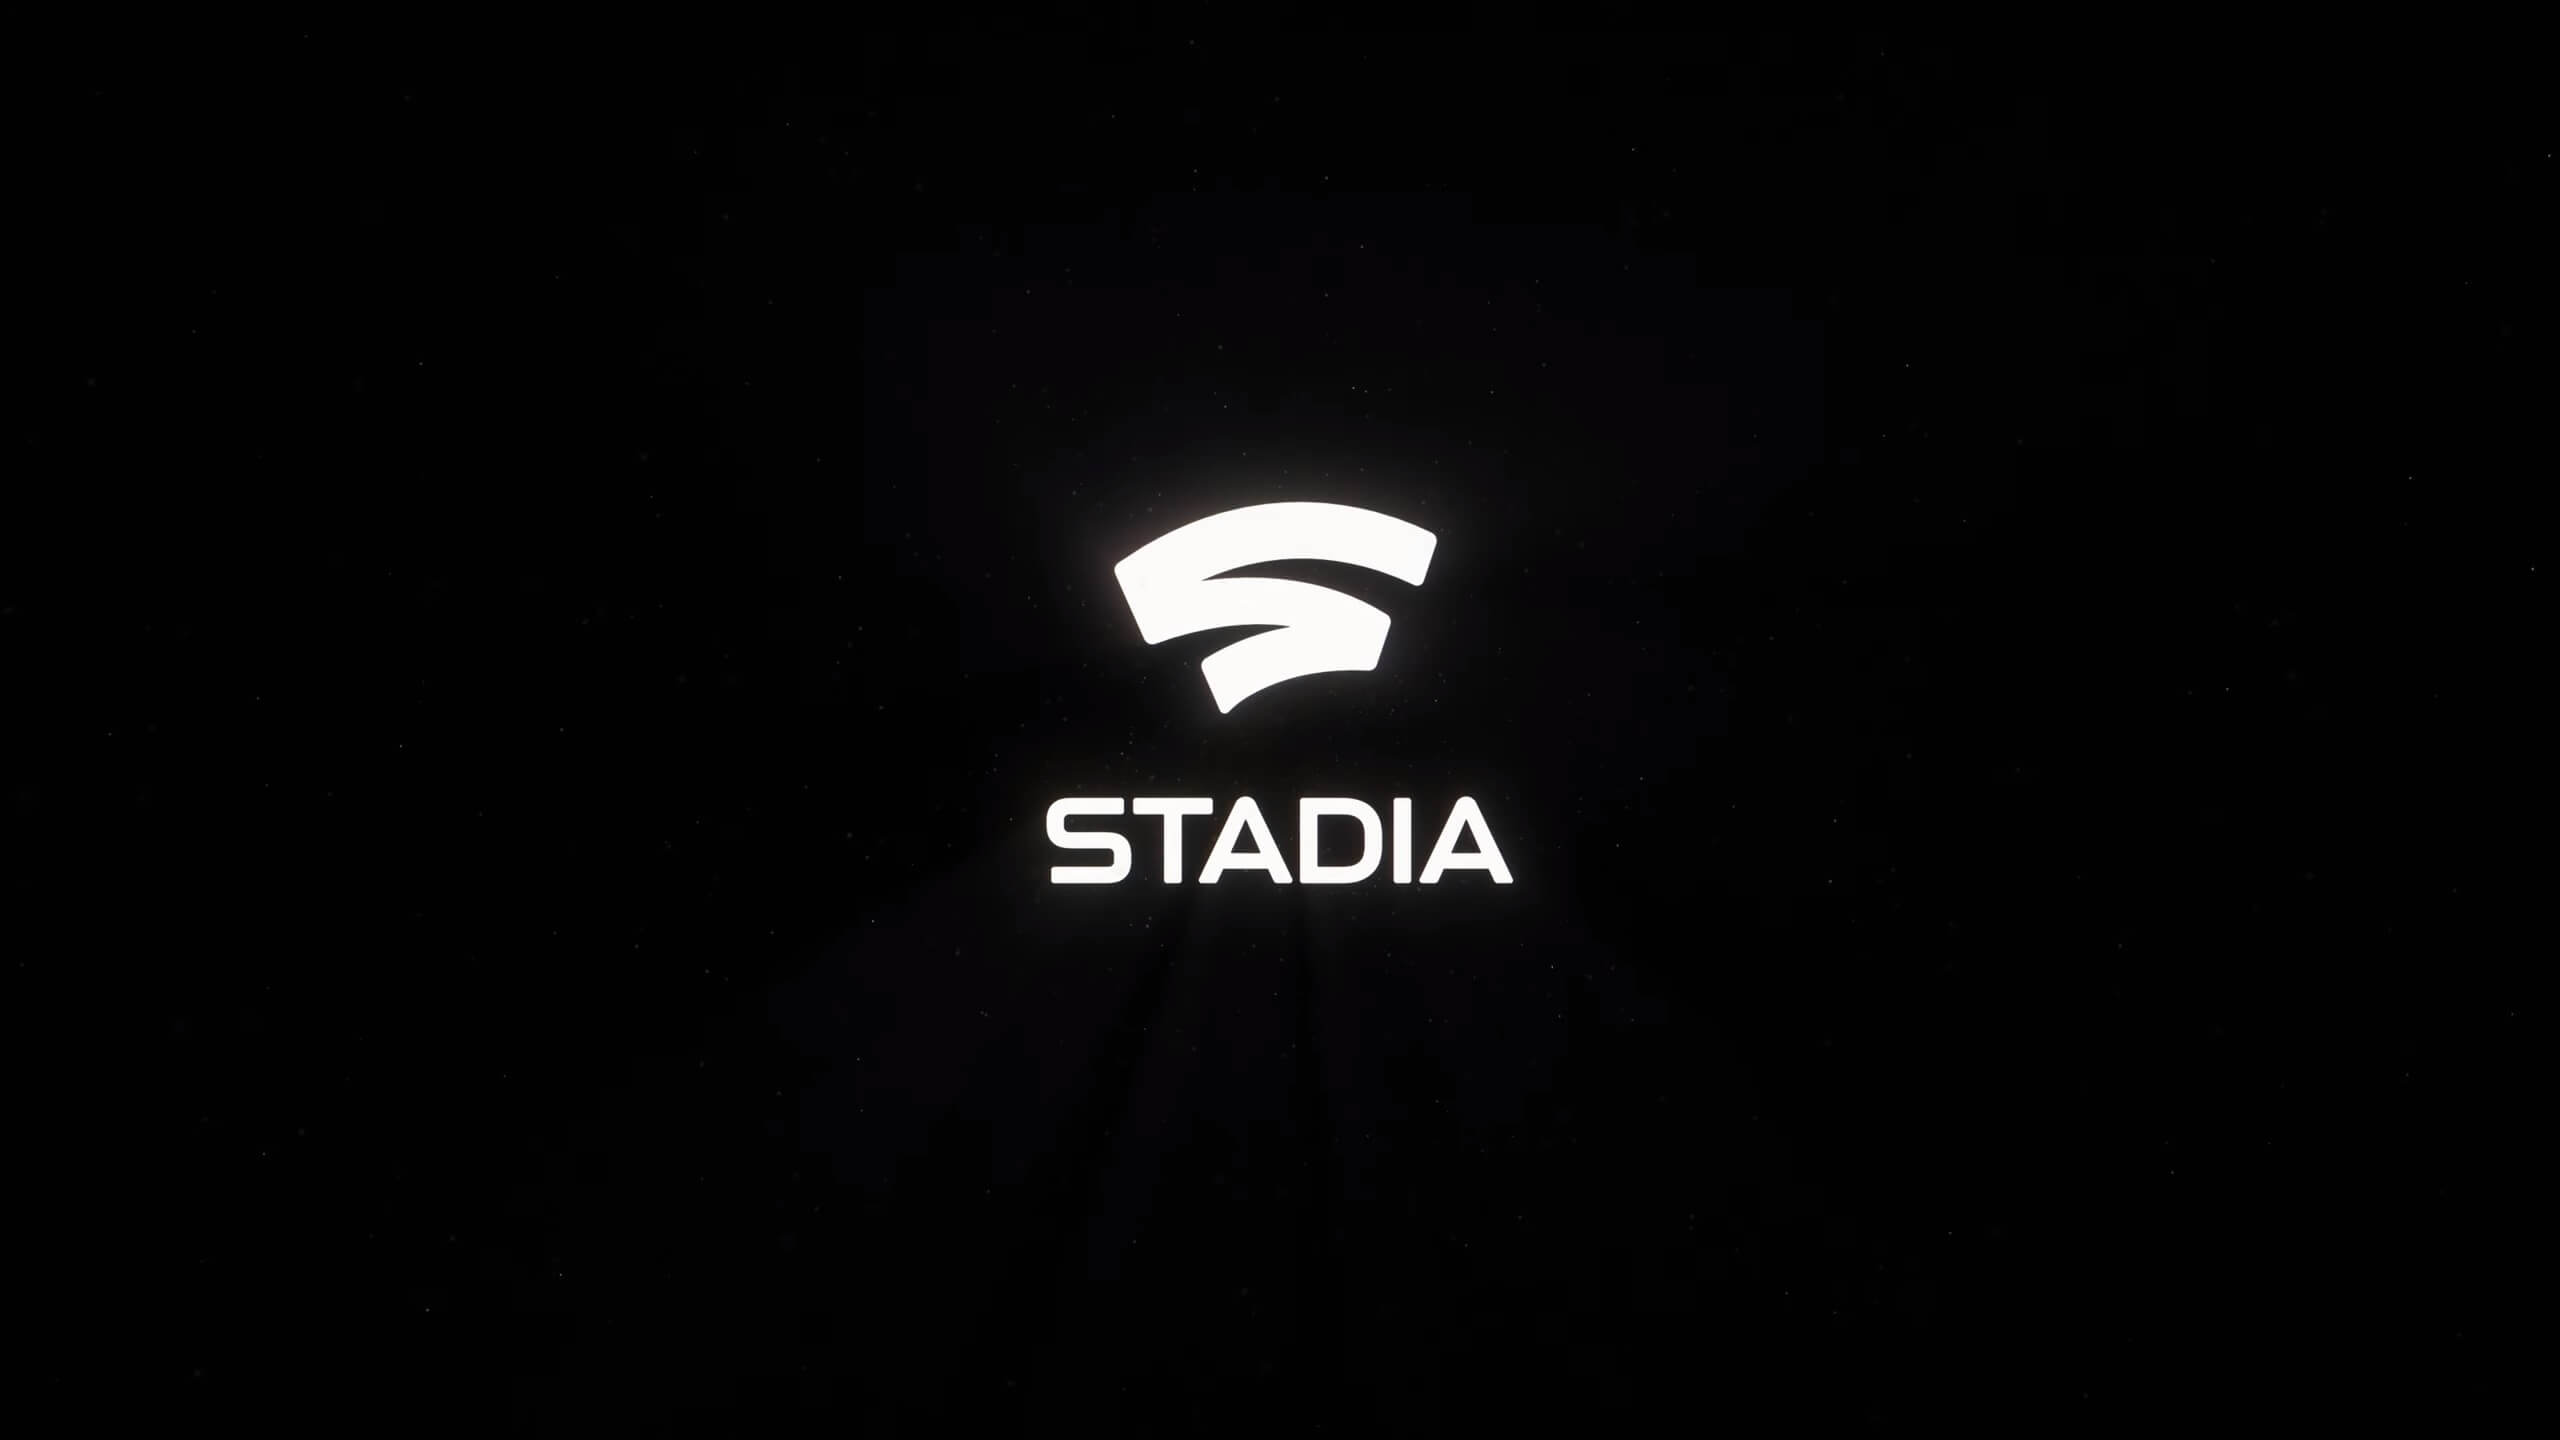 Google Stadia Pro launches this November, will have 31 games at launch, free model coming in 2020